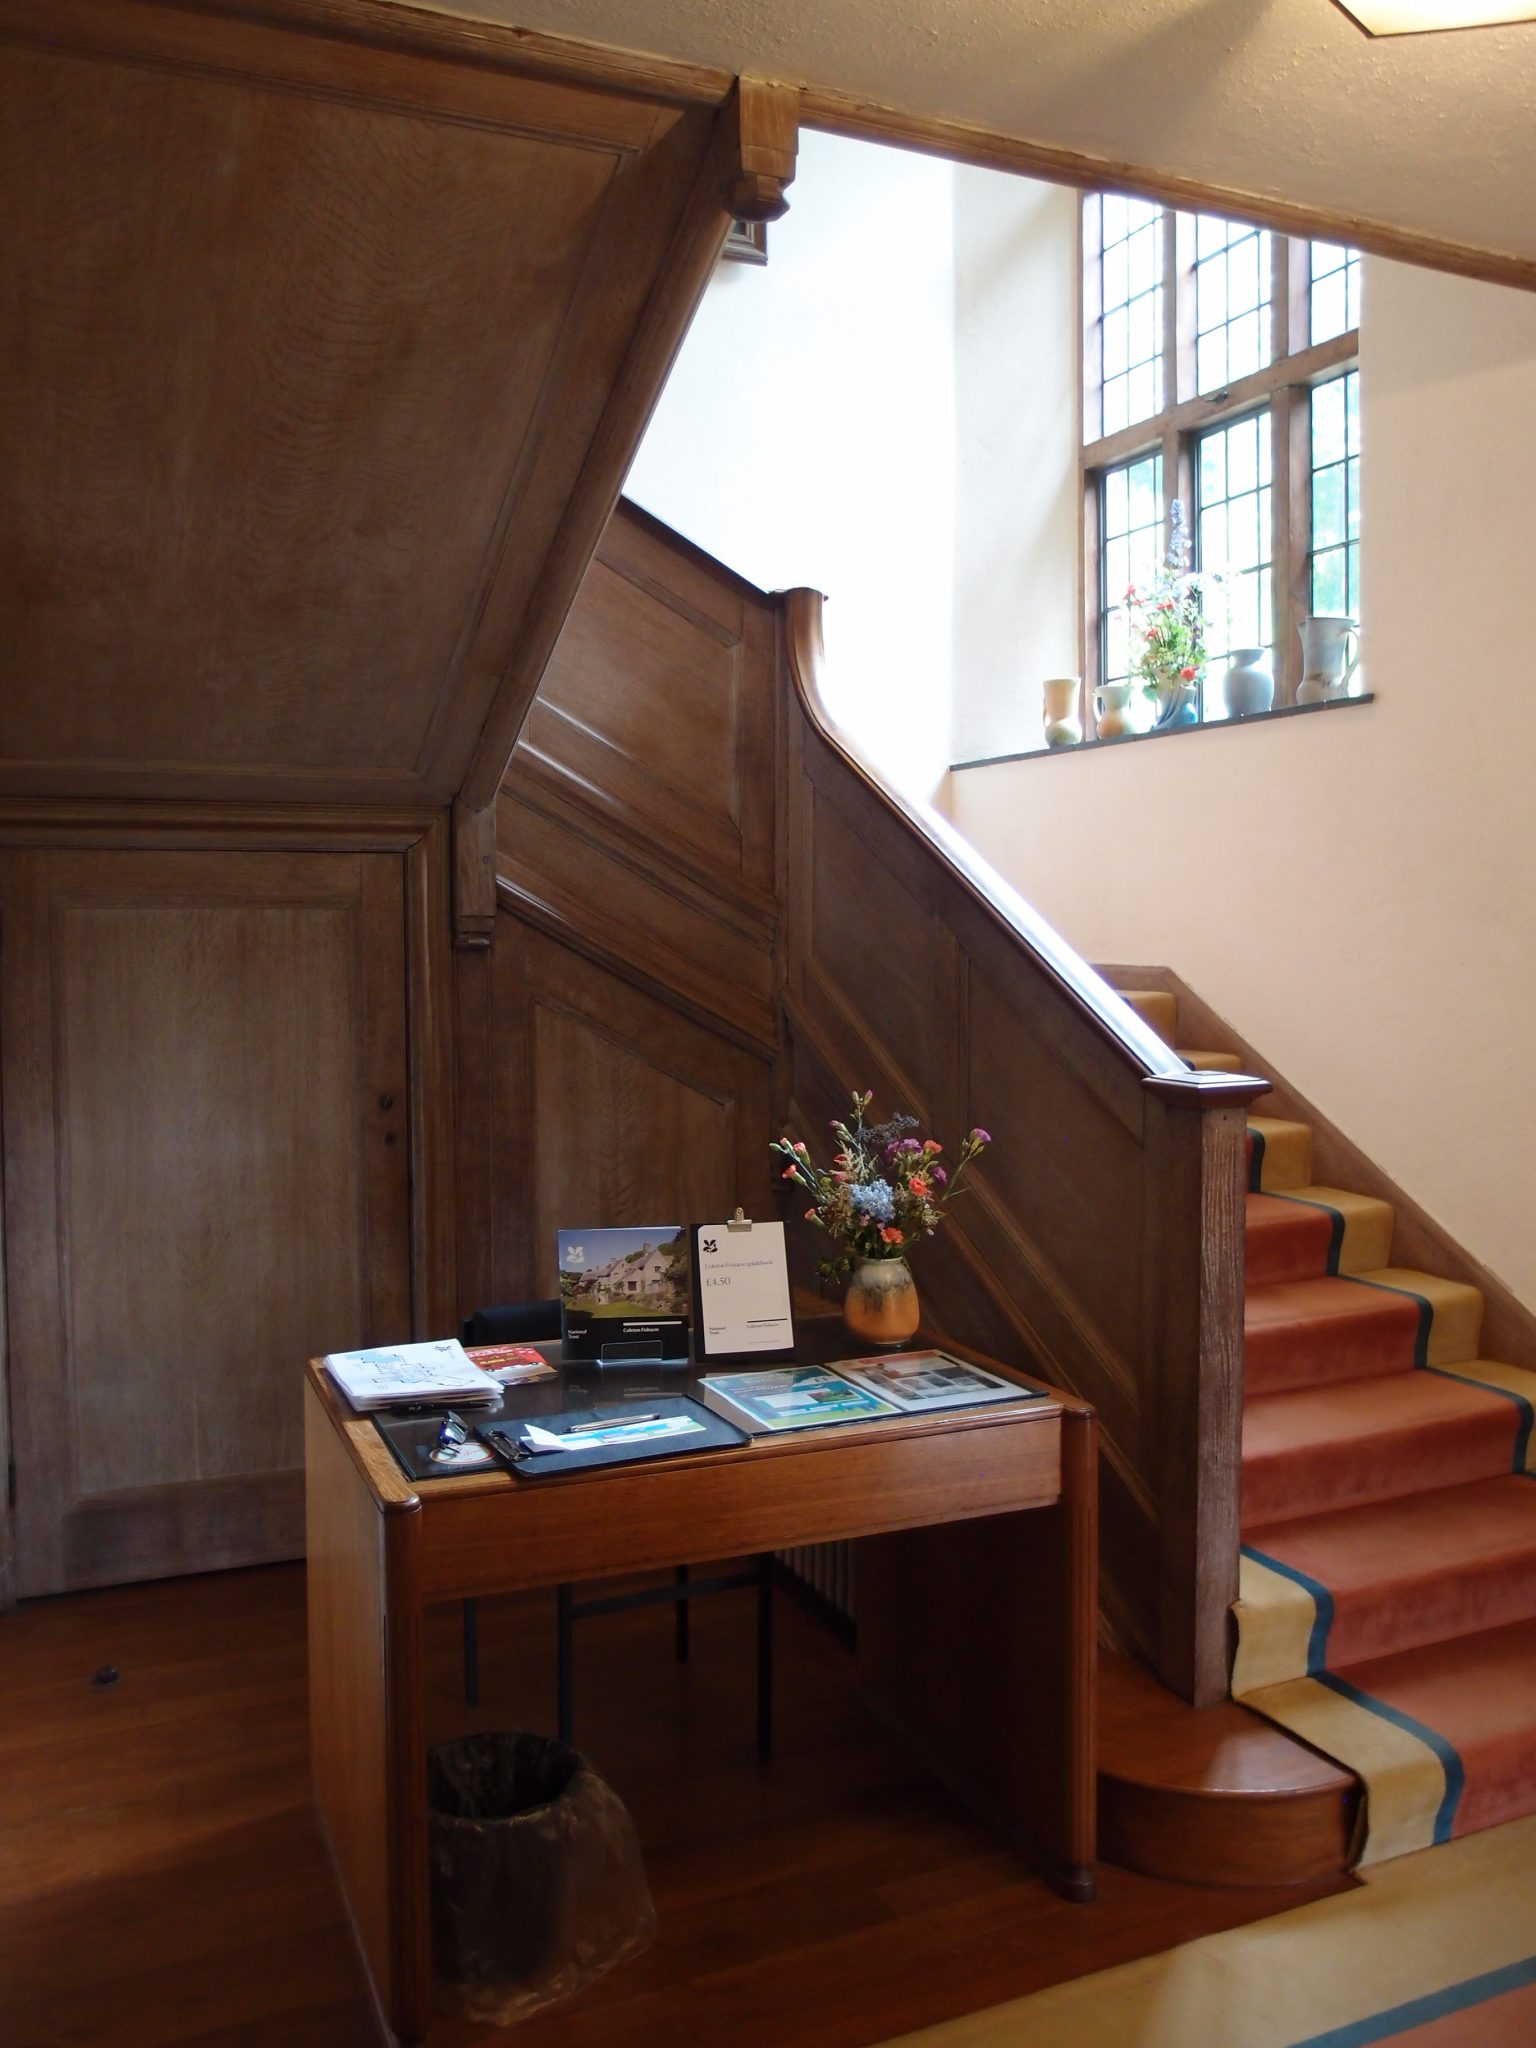 Main Staircase, Front Hall. The woodwork here is paneled pale, limed oak.